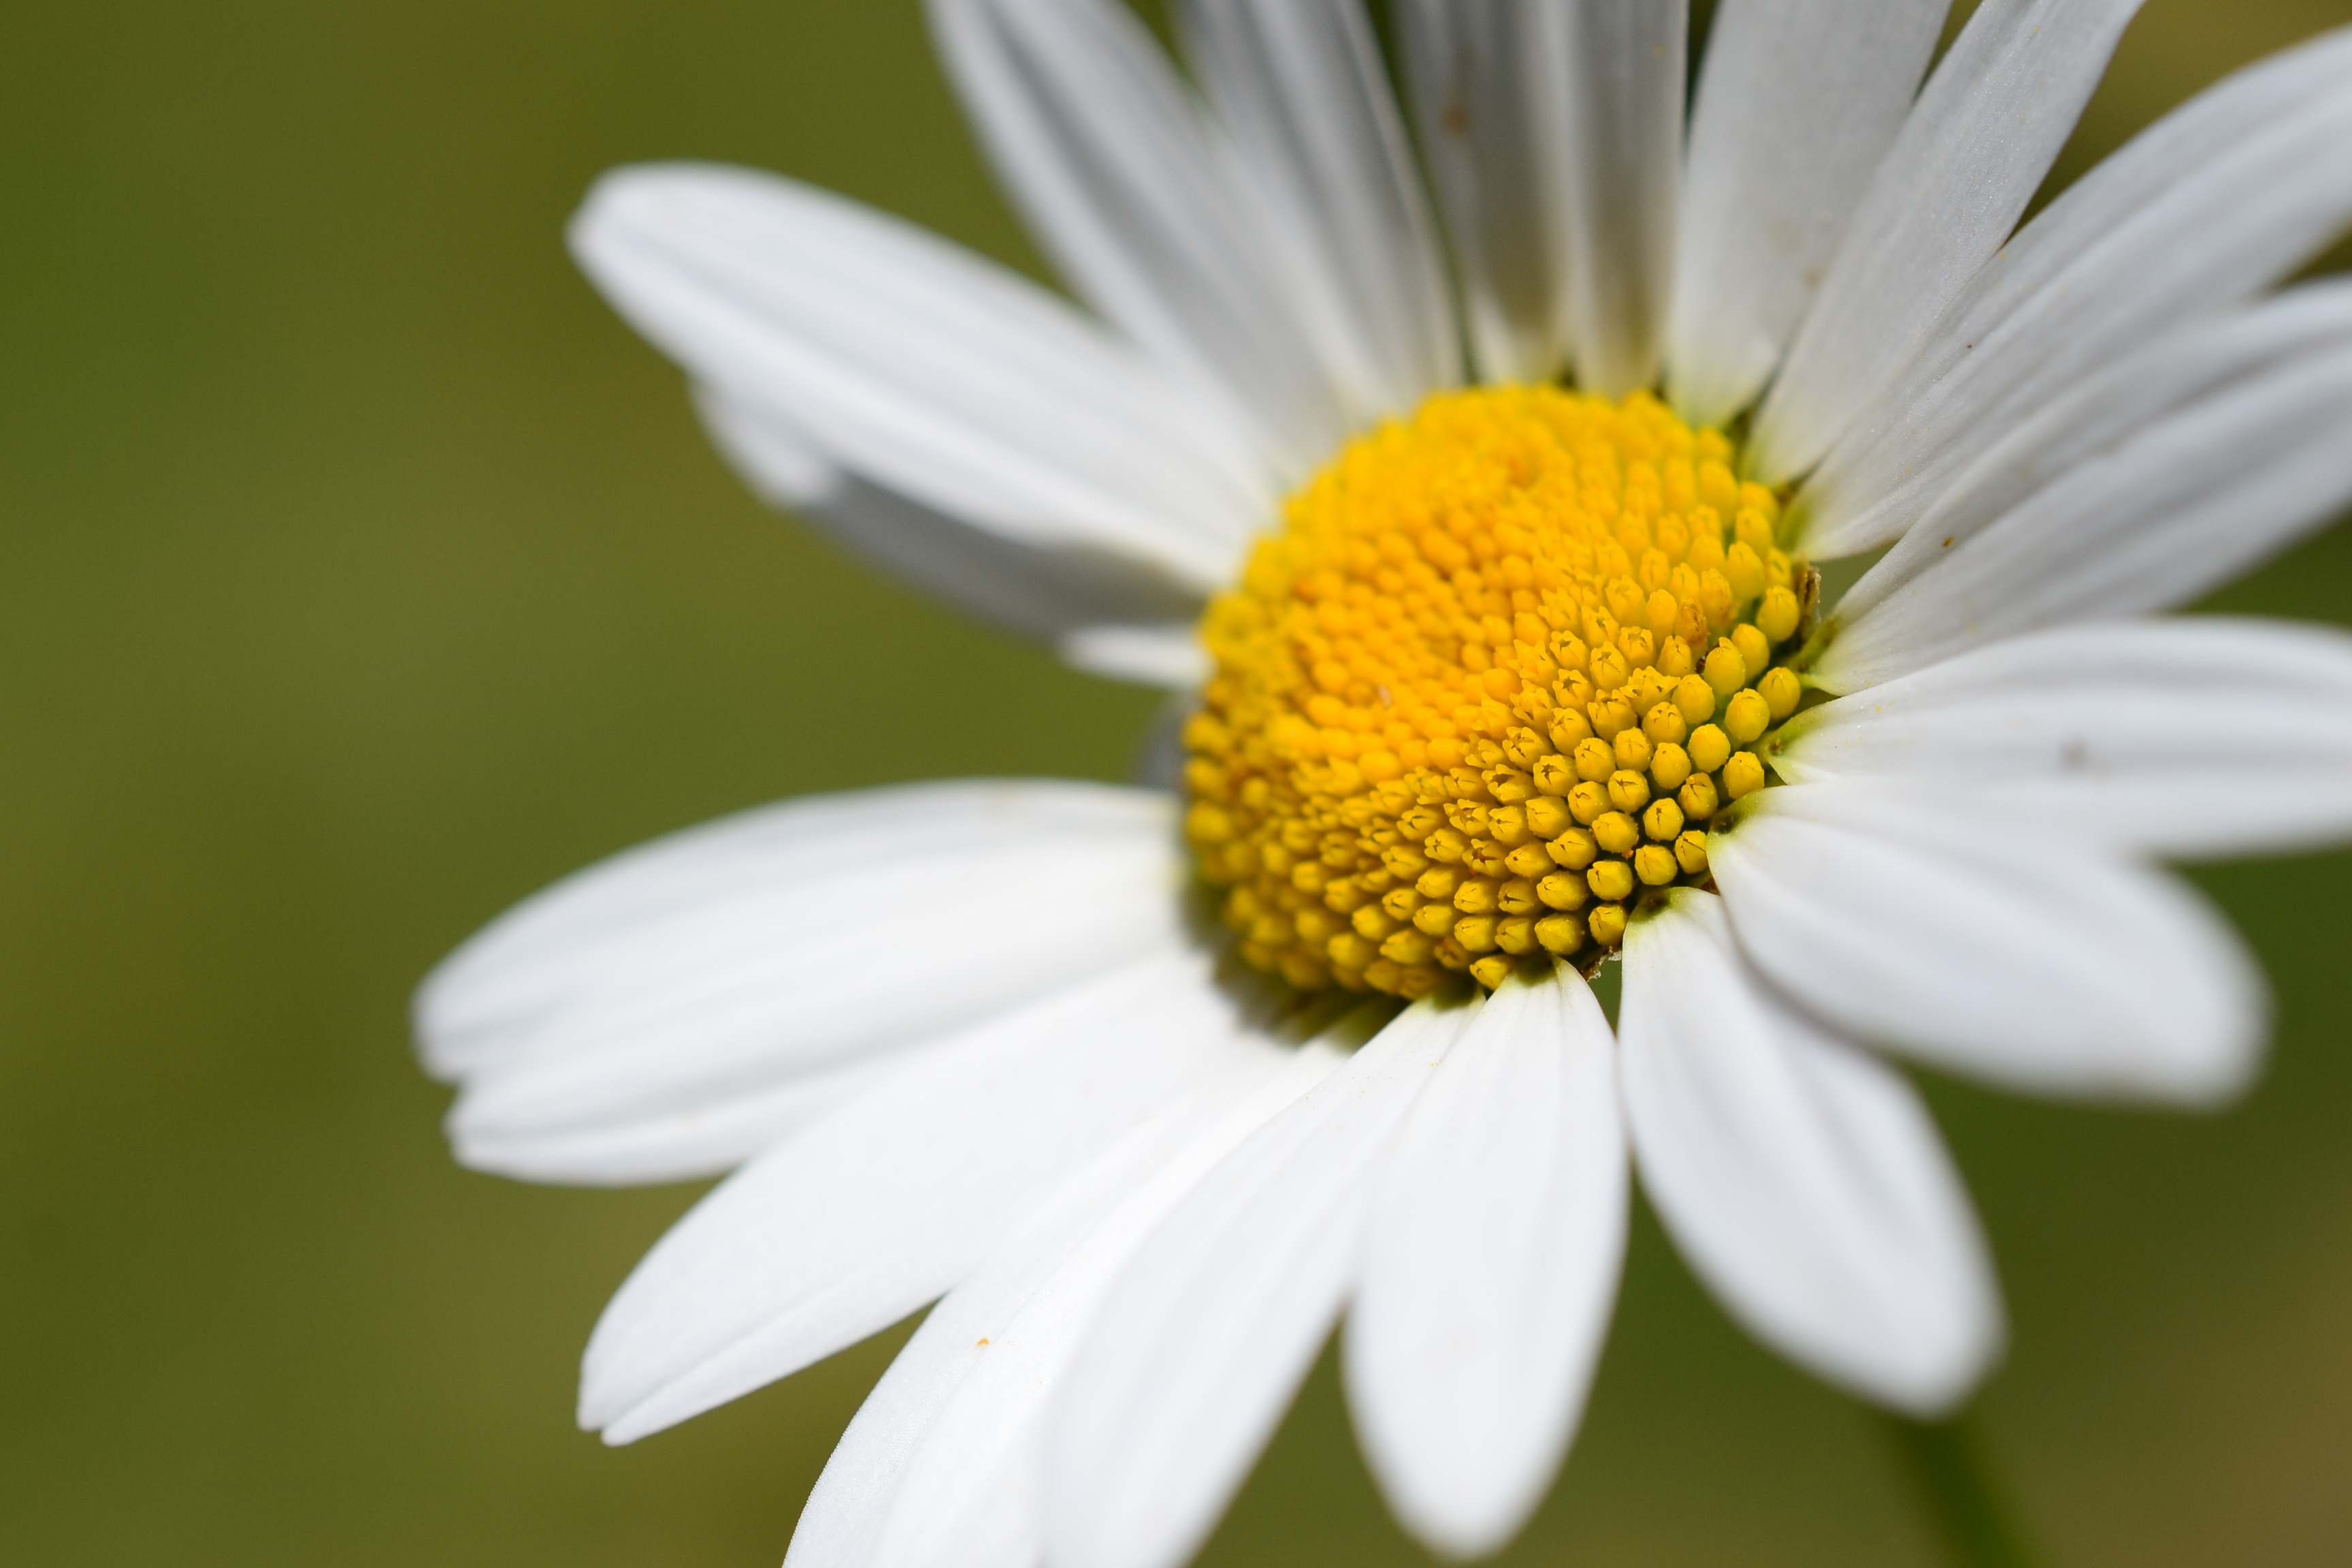 marguerite flower closeup